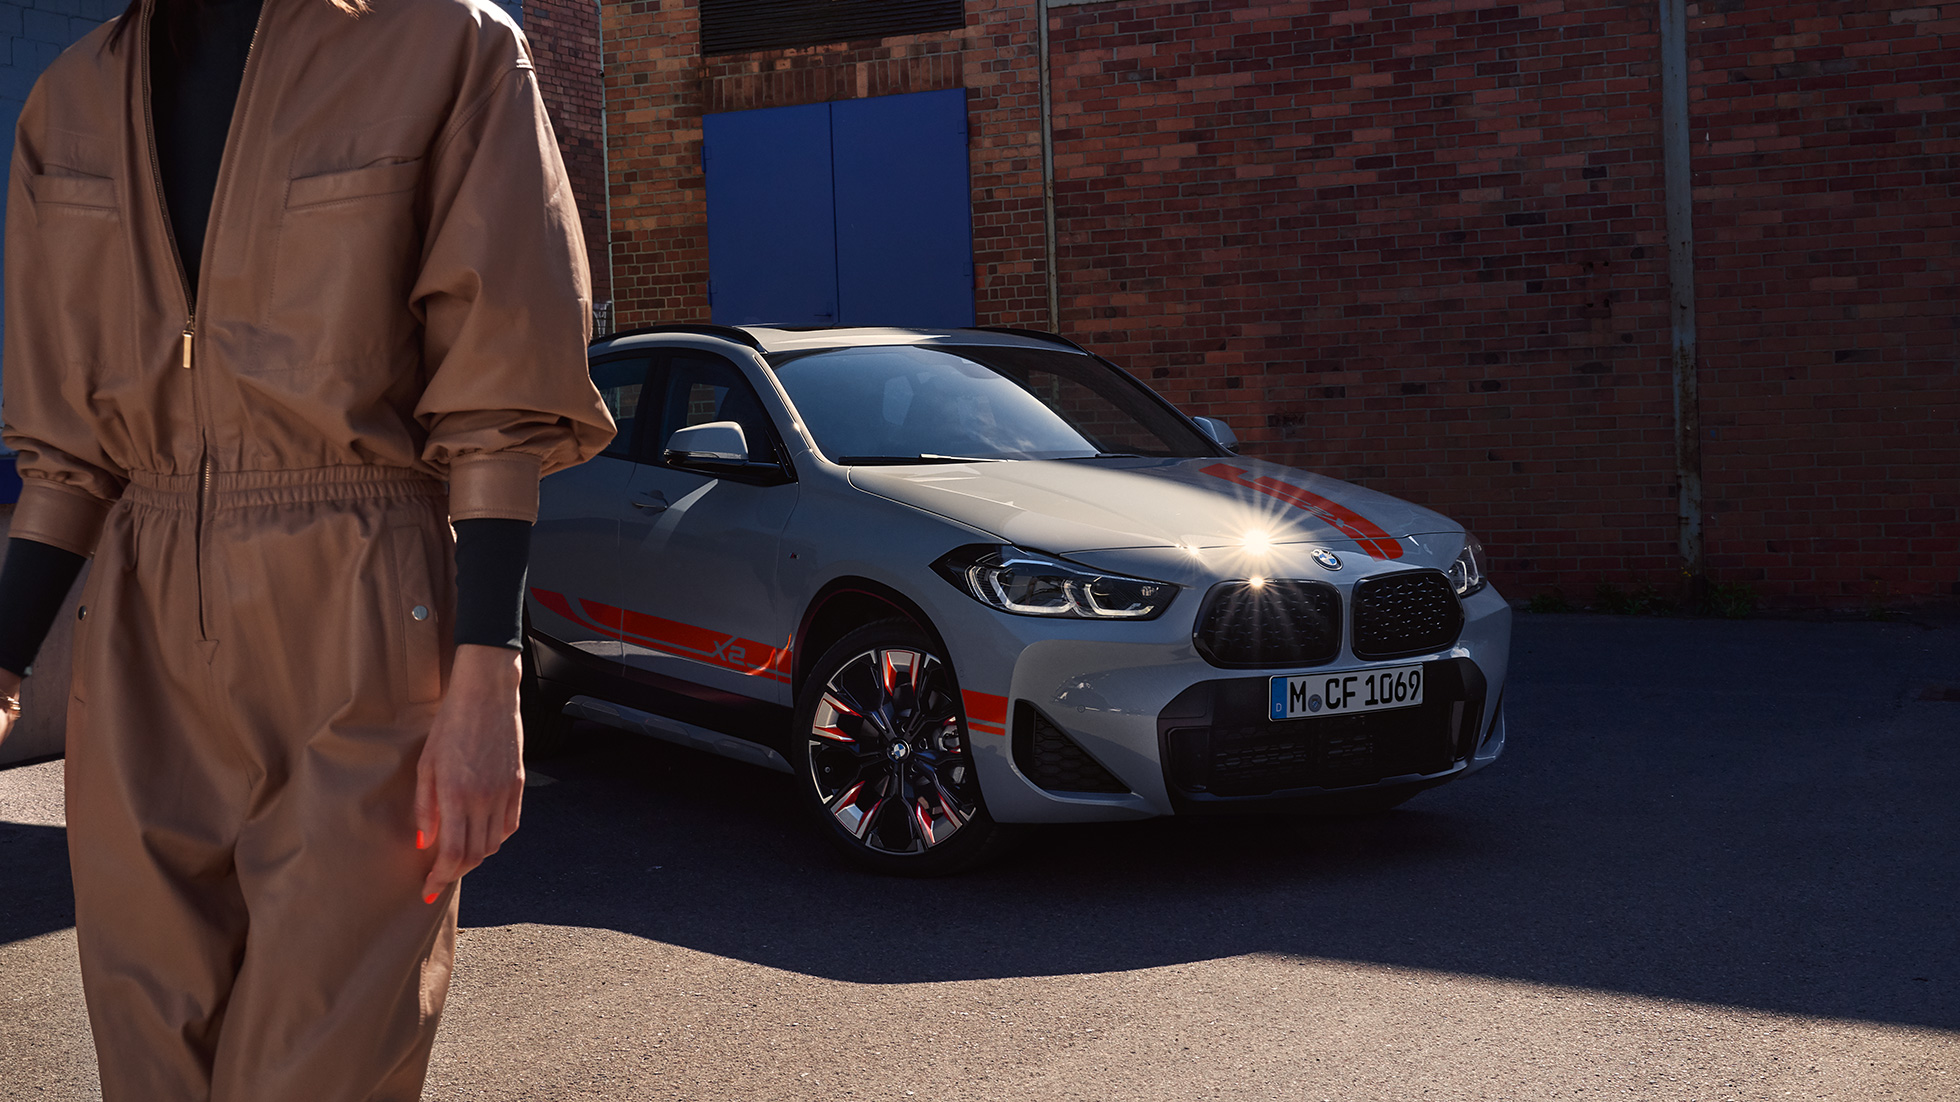 BMW X2 2020 F39 Brooklyn Grey three quarter front view Double kidney